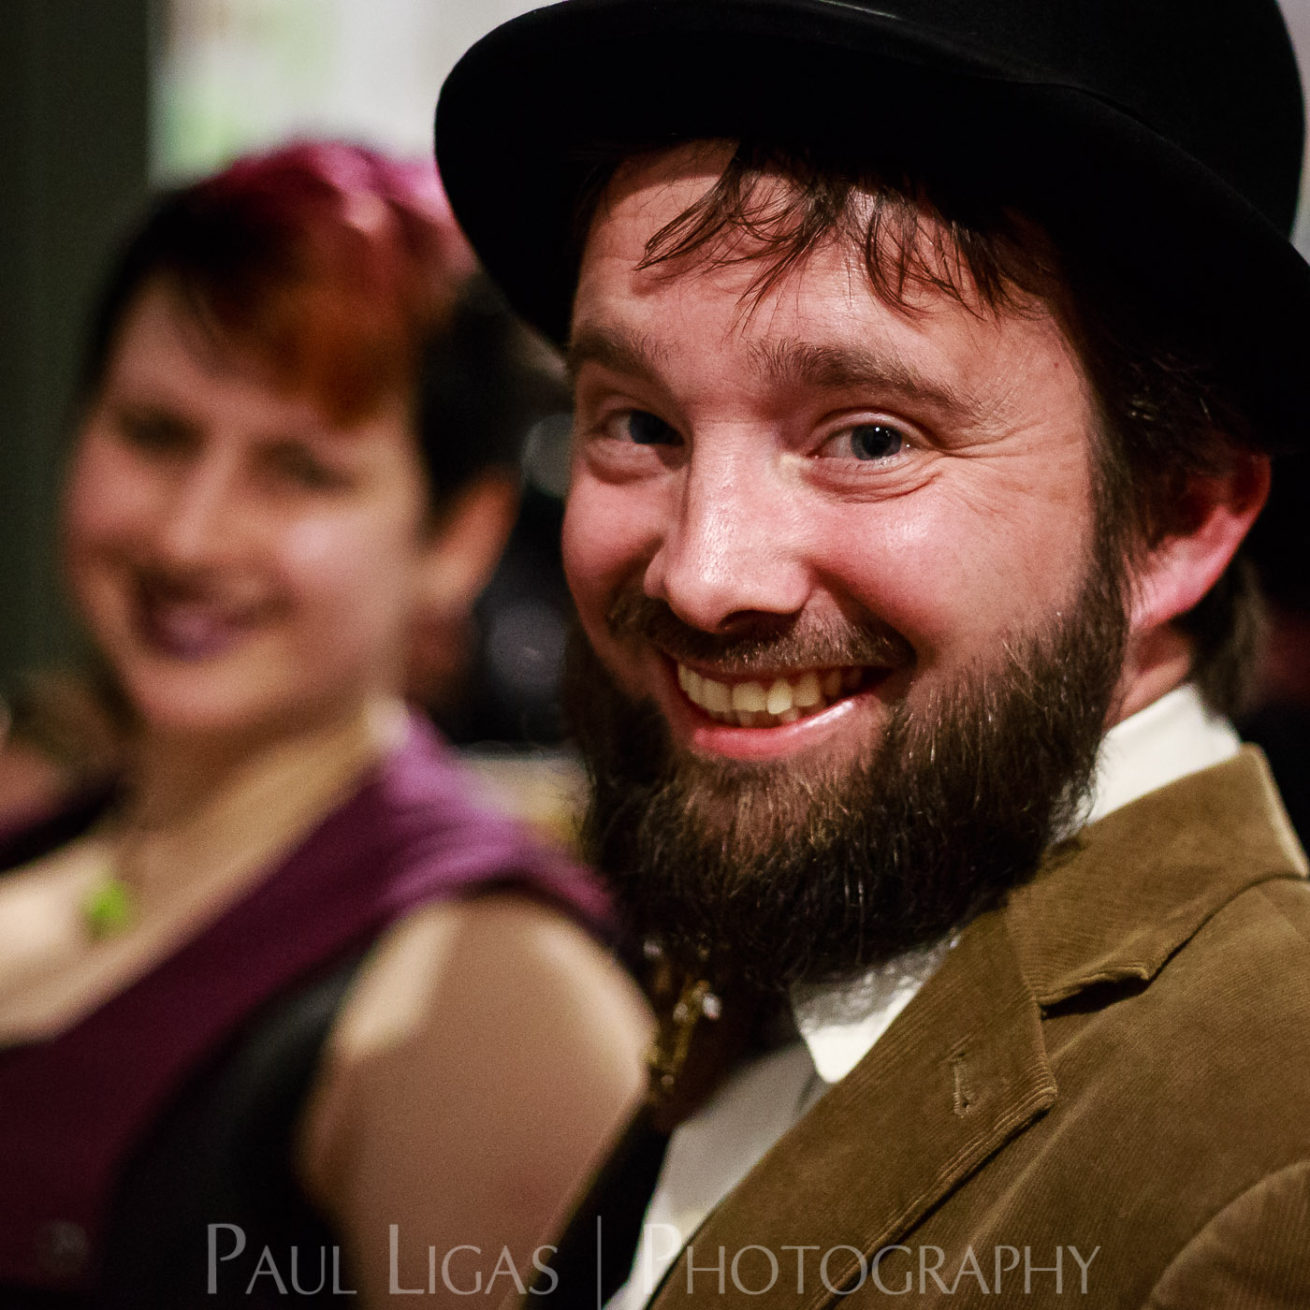 Steampunk Yule Ball 2017, event photographer music concert portrait herefordshire 9488